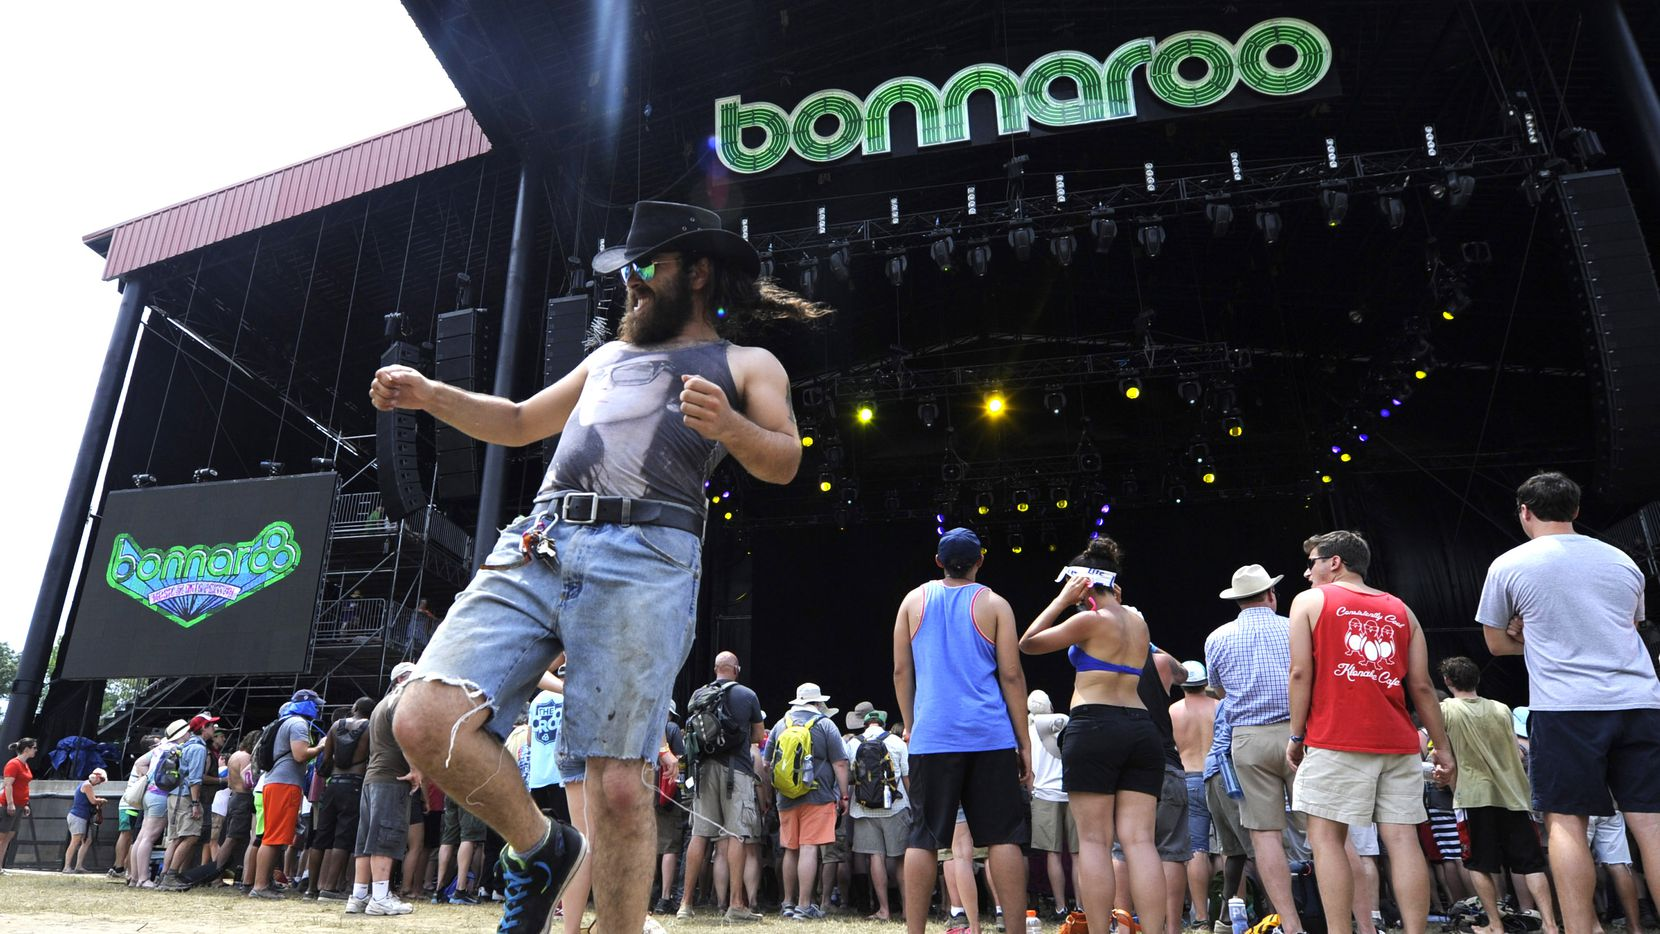 Ready, set, road trip: 10 music festivals worth the journey